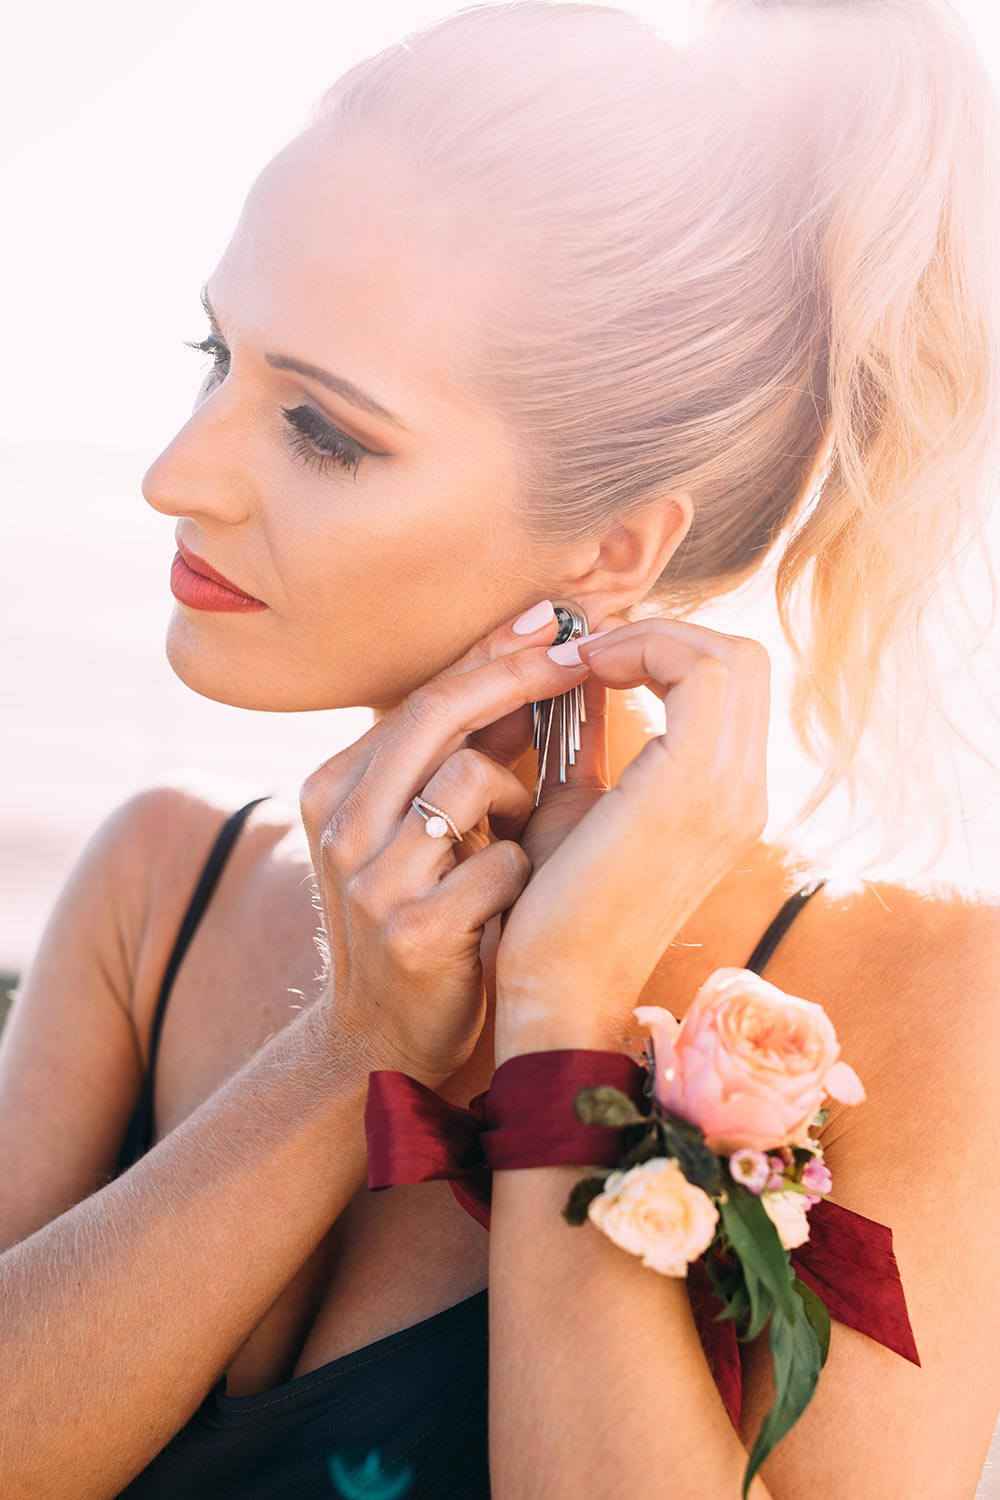 17-wilde-thyme-retro-beach-photoshoot-wedding-flowers-styled-by-cherish-st-ouen.jpg